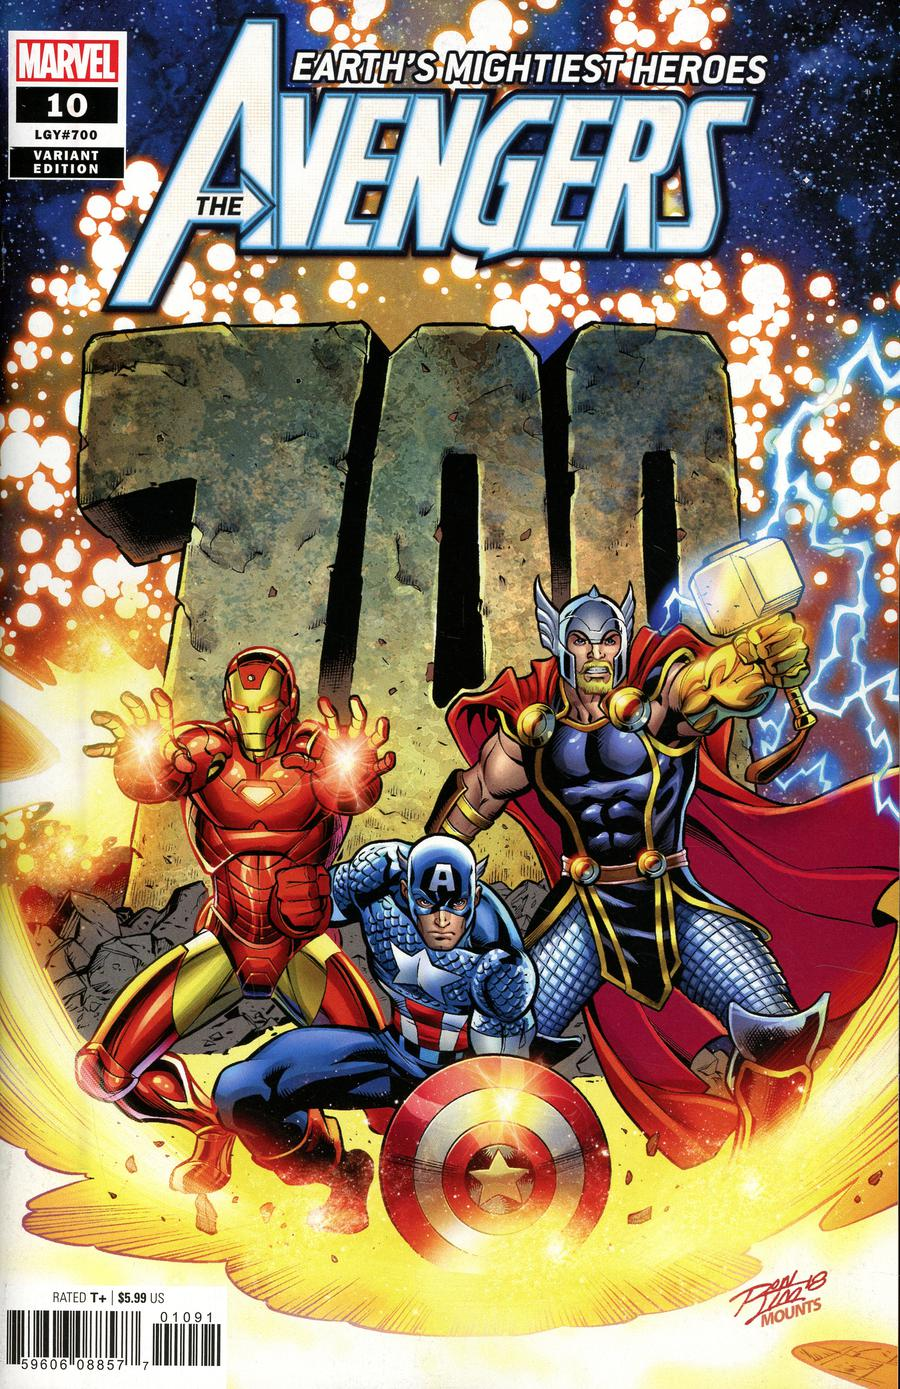 Avengers Vol 7 #10 Cover C Variant Ron Lim Cover (#700)